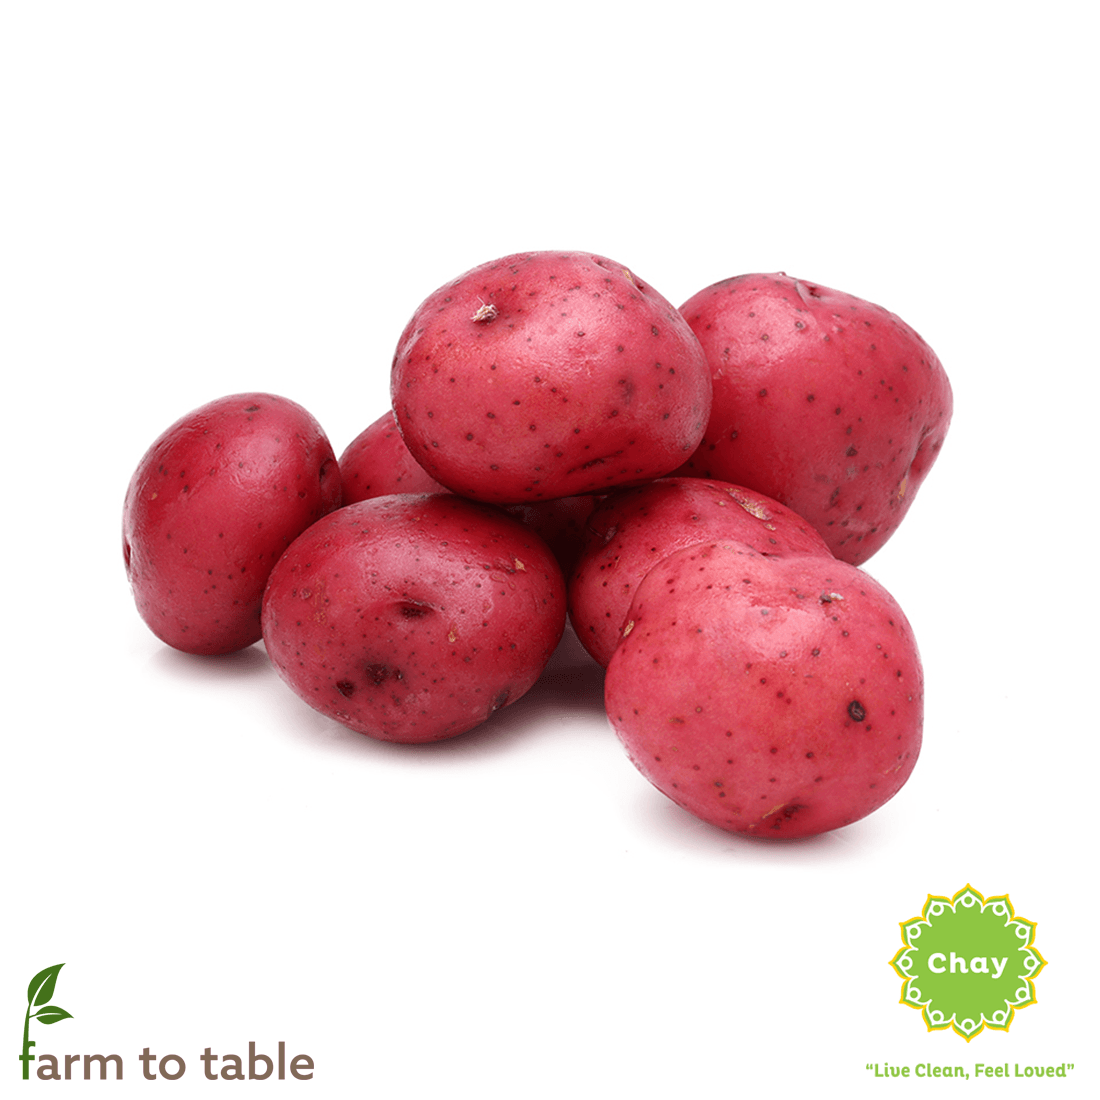 Red potato 0,9 - 1 kg en House of Chay